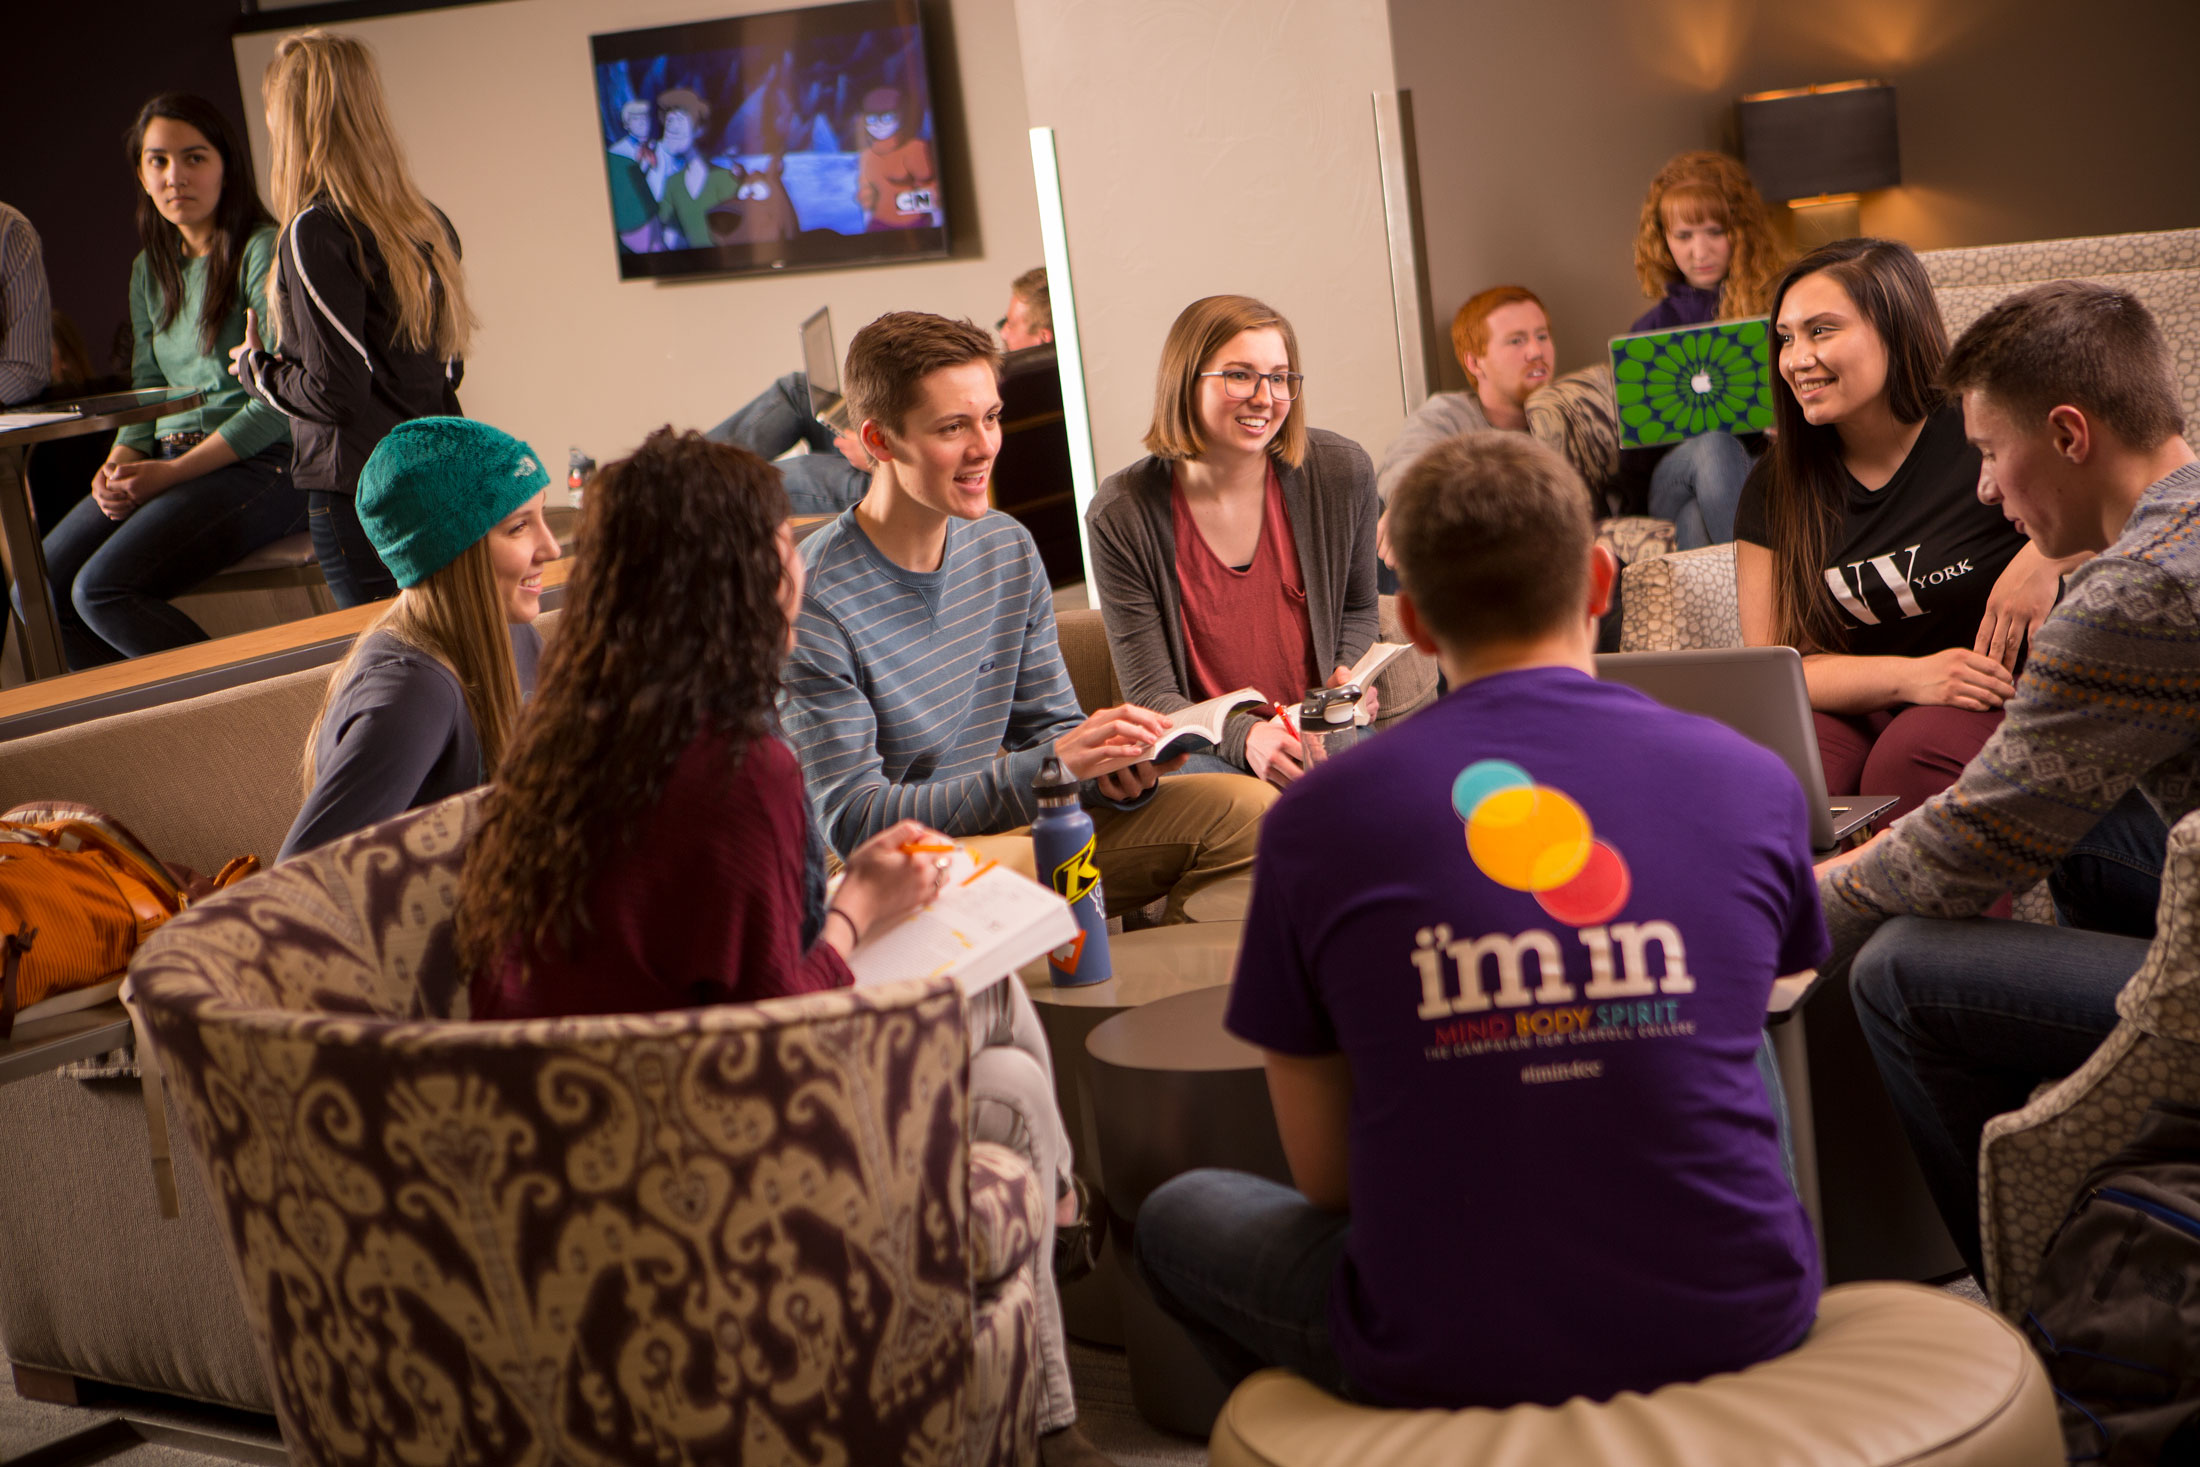 Students gathered in common area at Carroll College